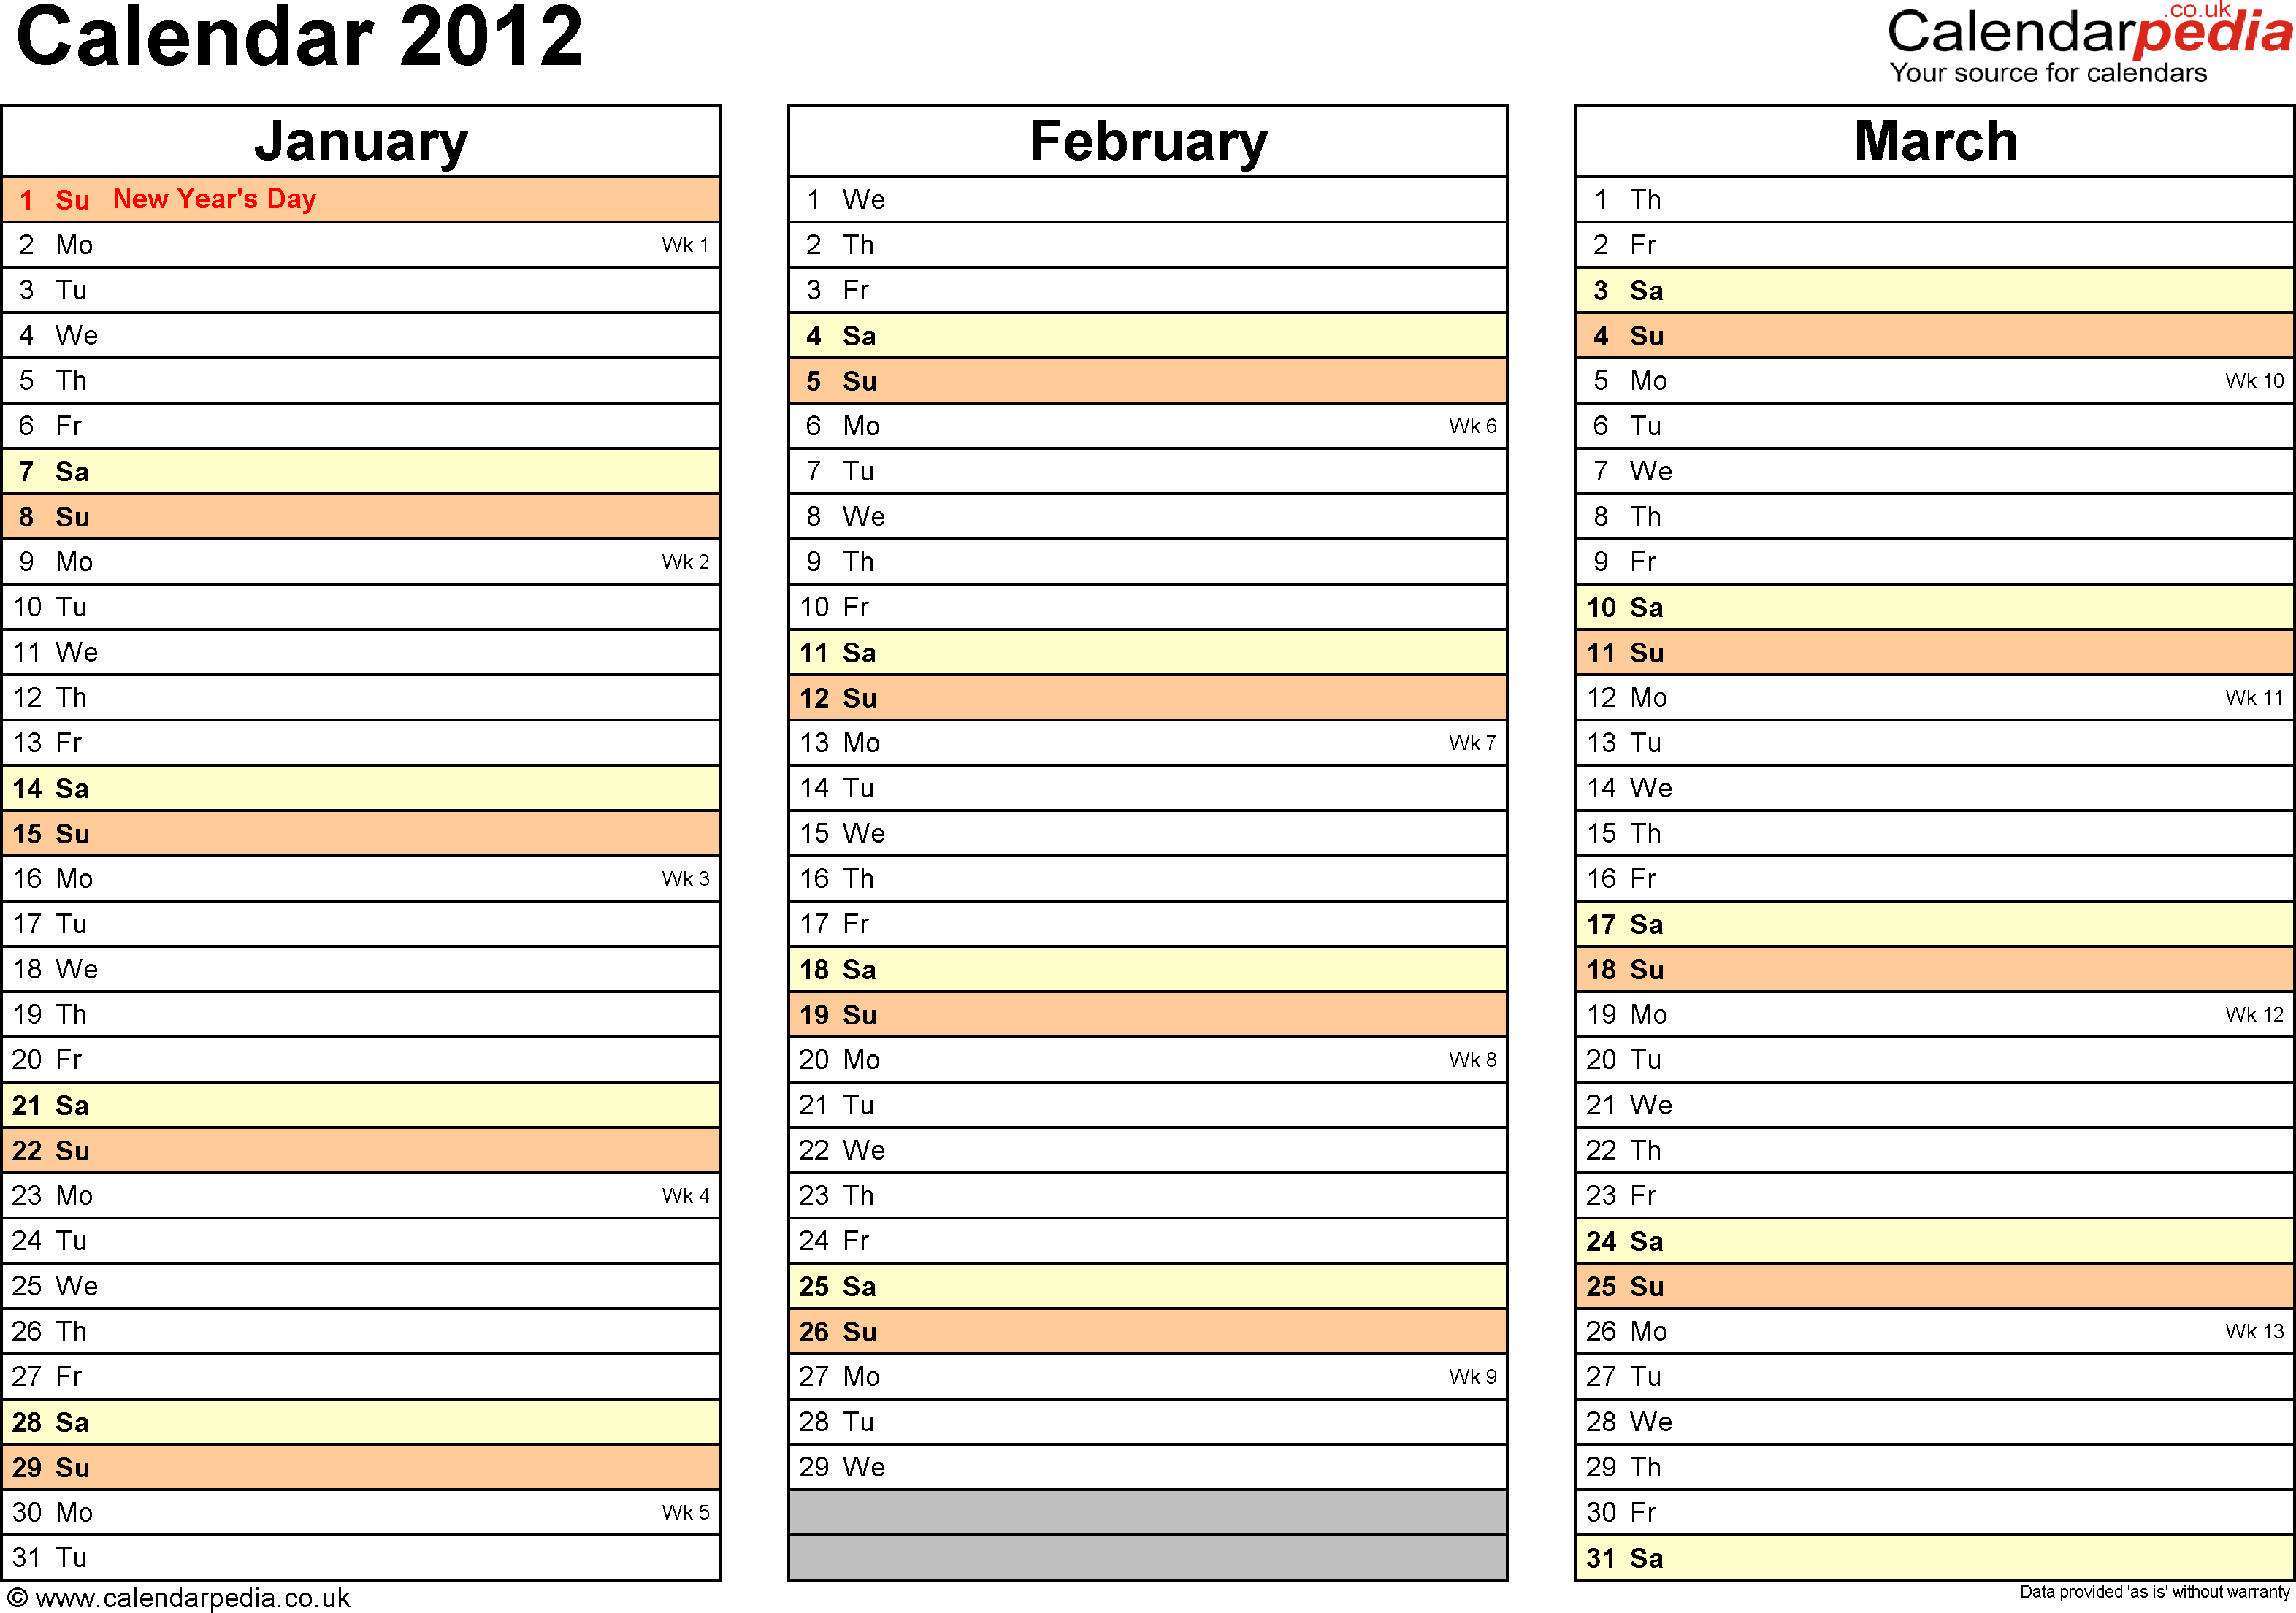 Template 6: Yearly calendar 2012 as Excel template, landscape orientation, 4 pages, months horizontally, days vertically, with UK bank holidays and week numbers